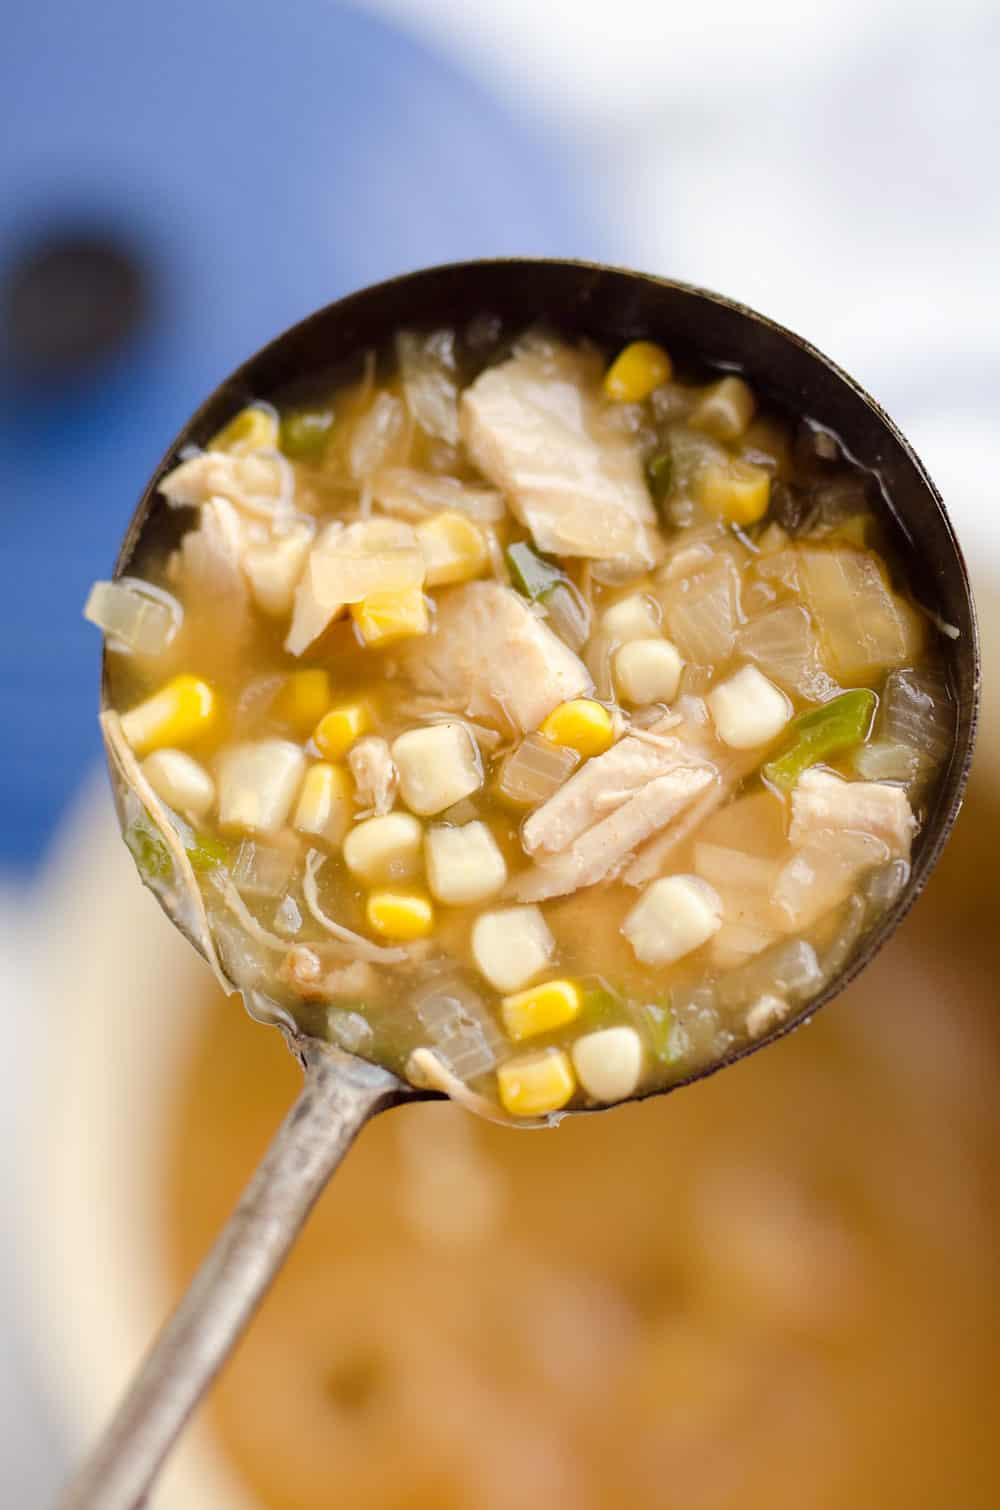 Spicy Turkey & Sweet Corn Soup is the perfect recipe to use up your holiday leftovers for a light and healthy meal ready in just 15 minutes!